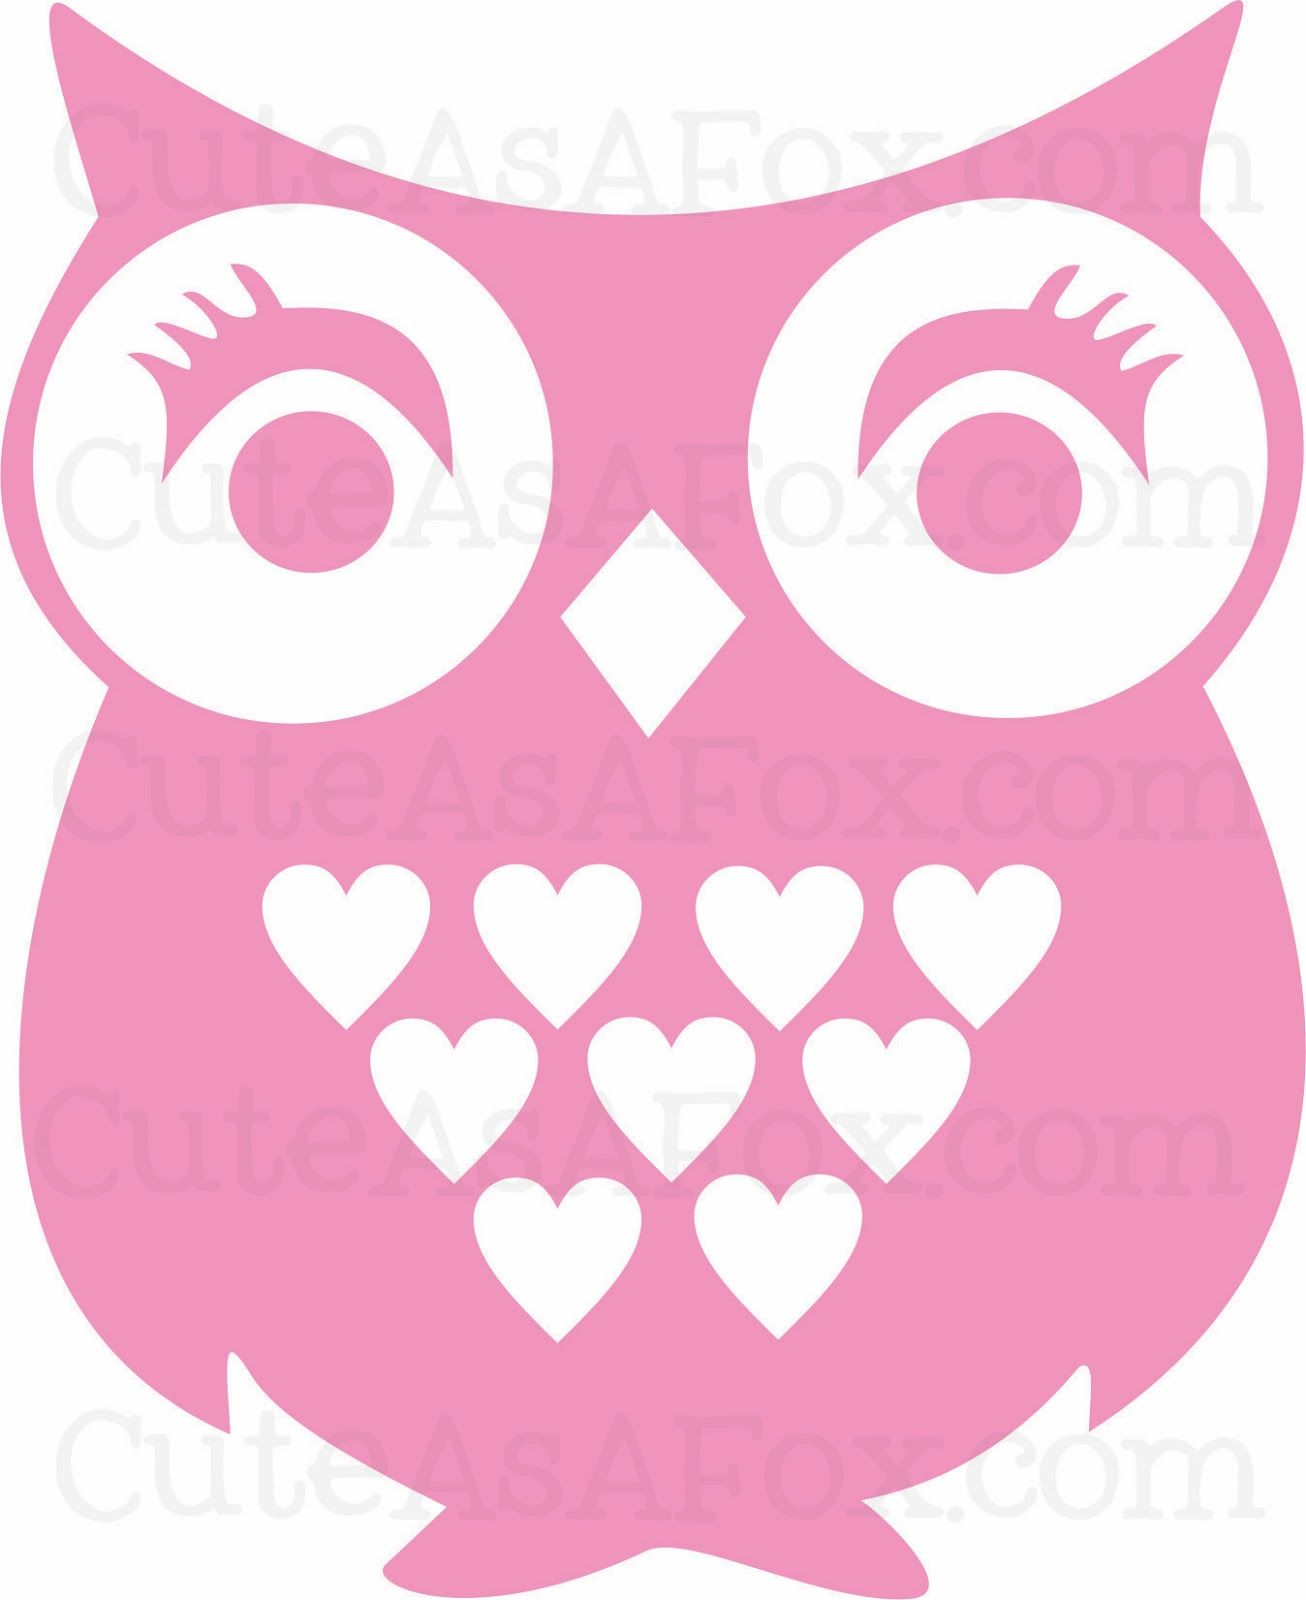 1306x1600 Owl You Need Is Love Heart Owl With Free Download Foxes, Owl